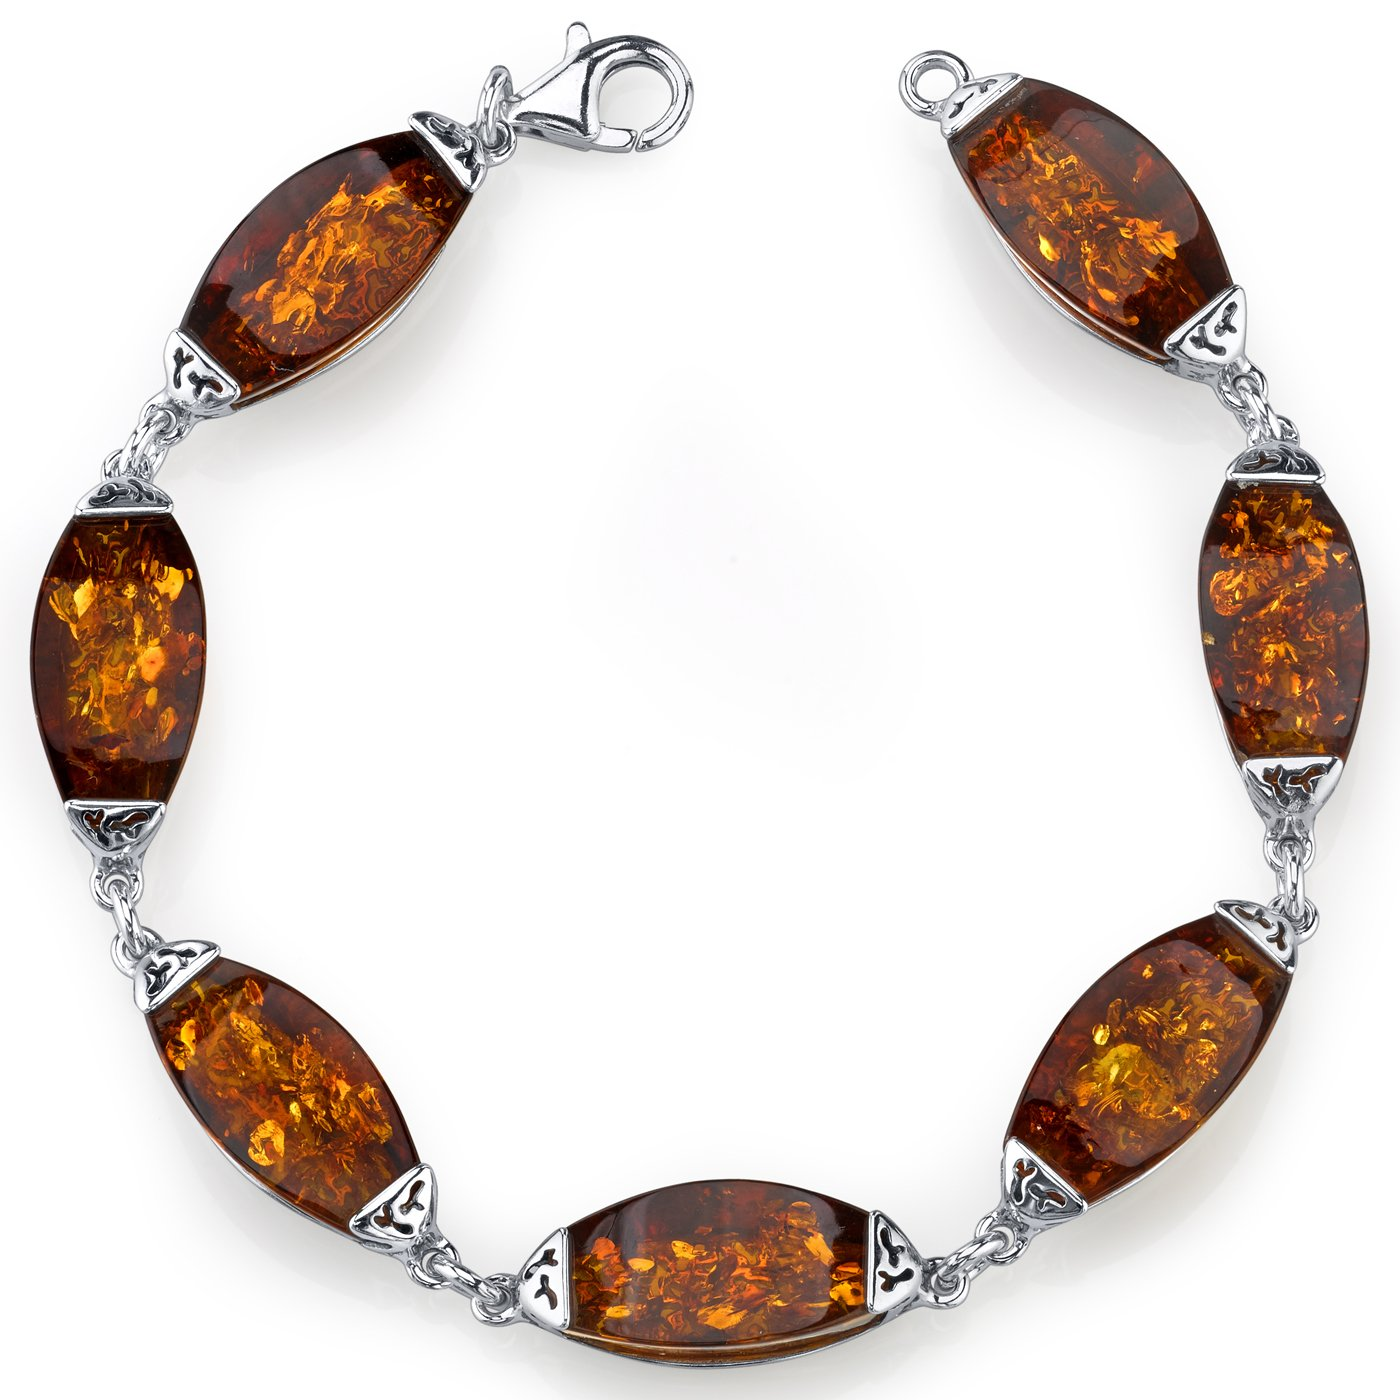 Baltic Amber Gallery Bracelet Sterling Silver Cognac Color by Peora